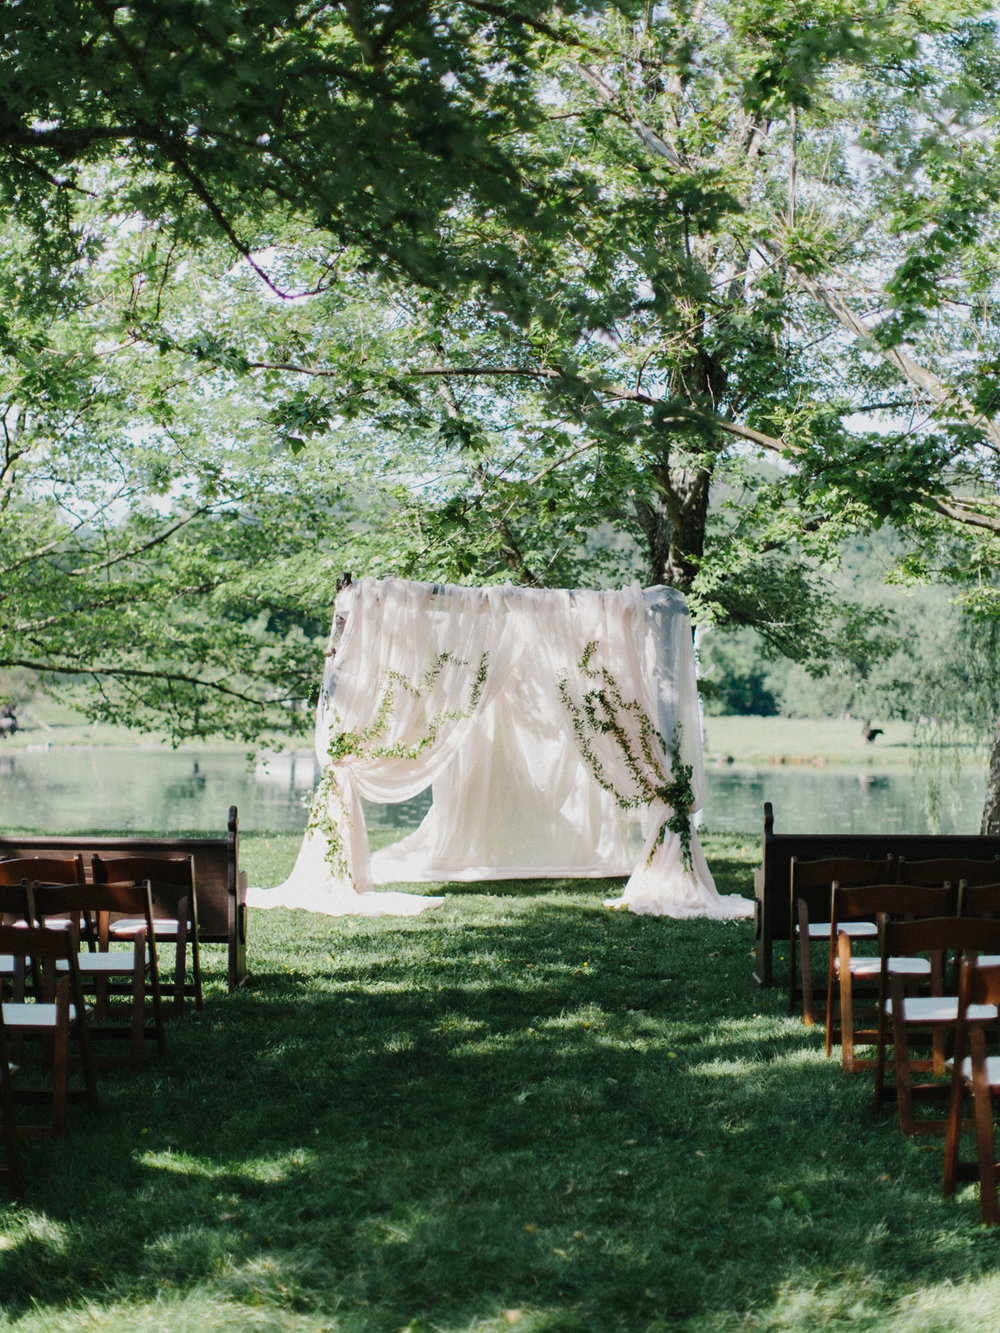 The Ceremony took place under this rustic wooden arch that we draped light apricot drapery on and tied back with vines running up each side.